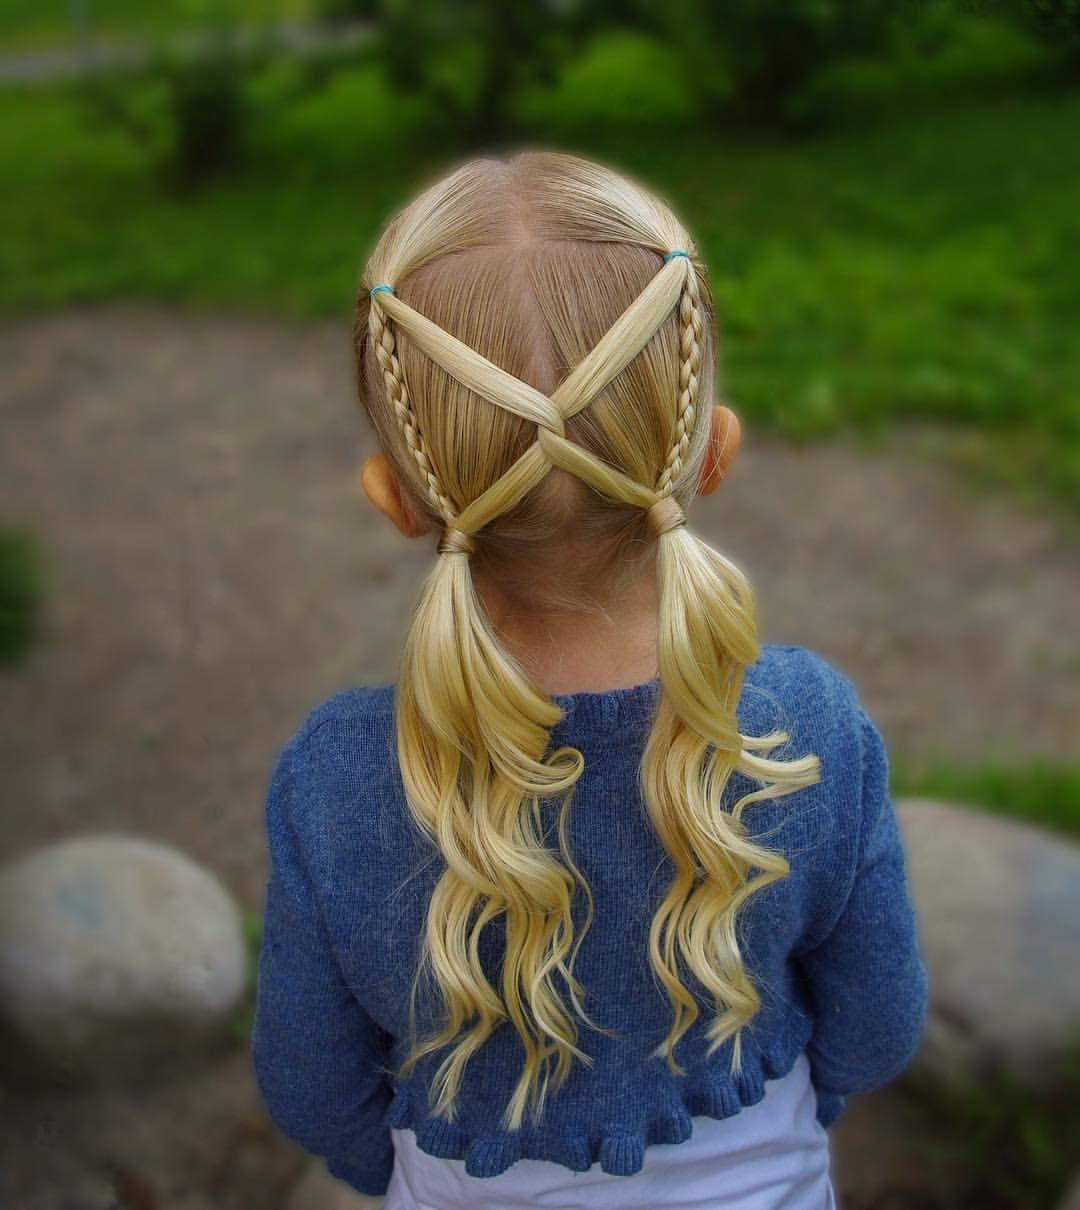 1,006 Me gusta, 48 comentarios - Hilde (@studiohilde) en Instagram: Another version of this pigtail style I did earlier this summer! My girl really loves this kind of… #girlhairstyles